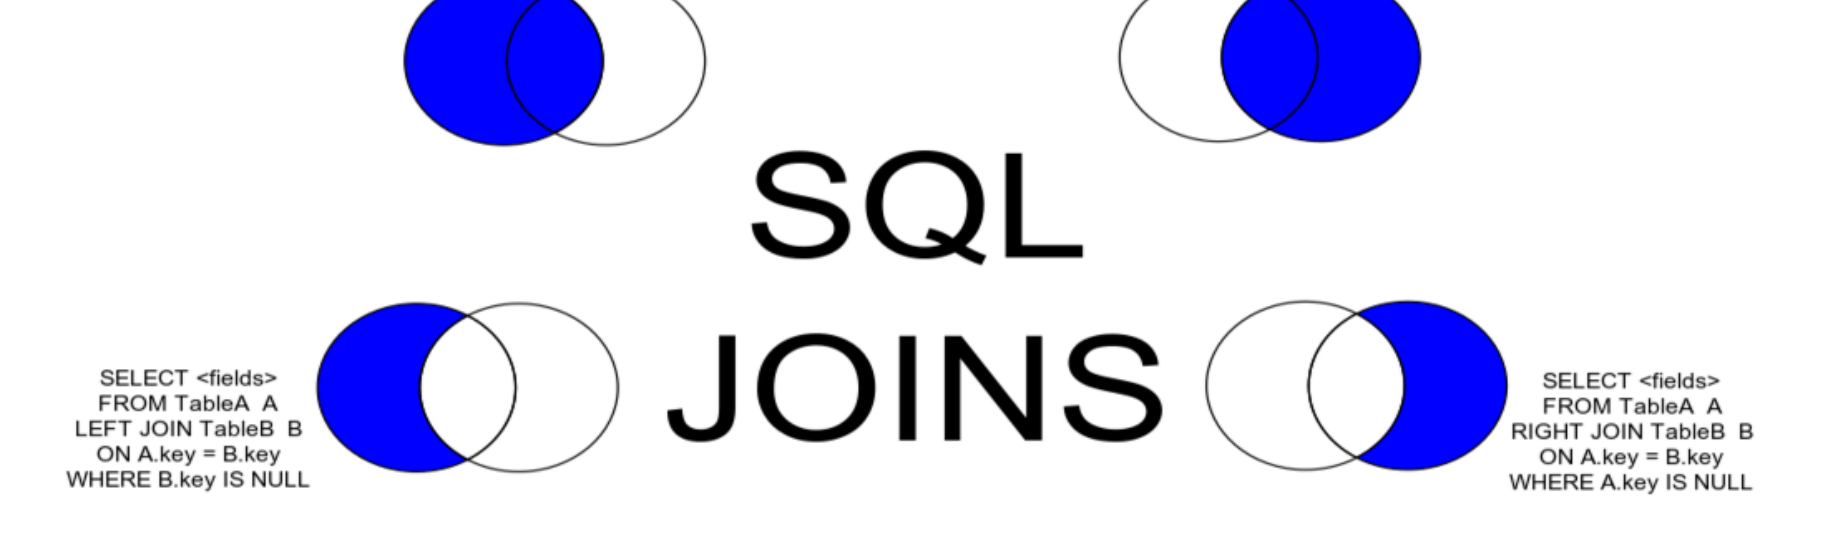 Quick recap of SQL and SQL Joins - Ronald Wahome - Medium